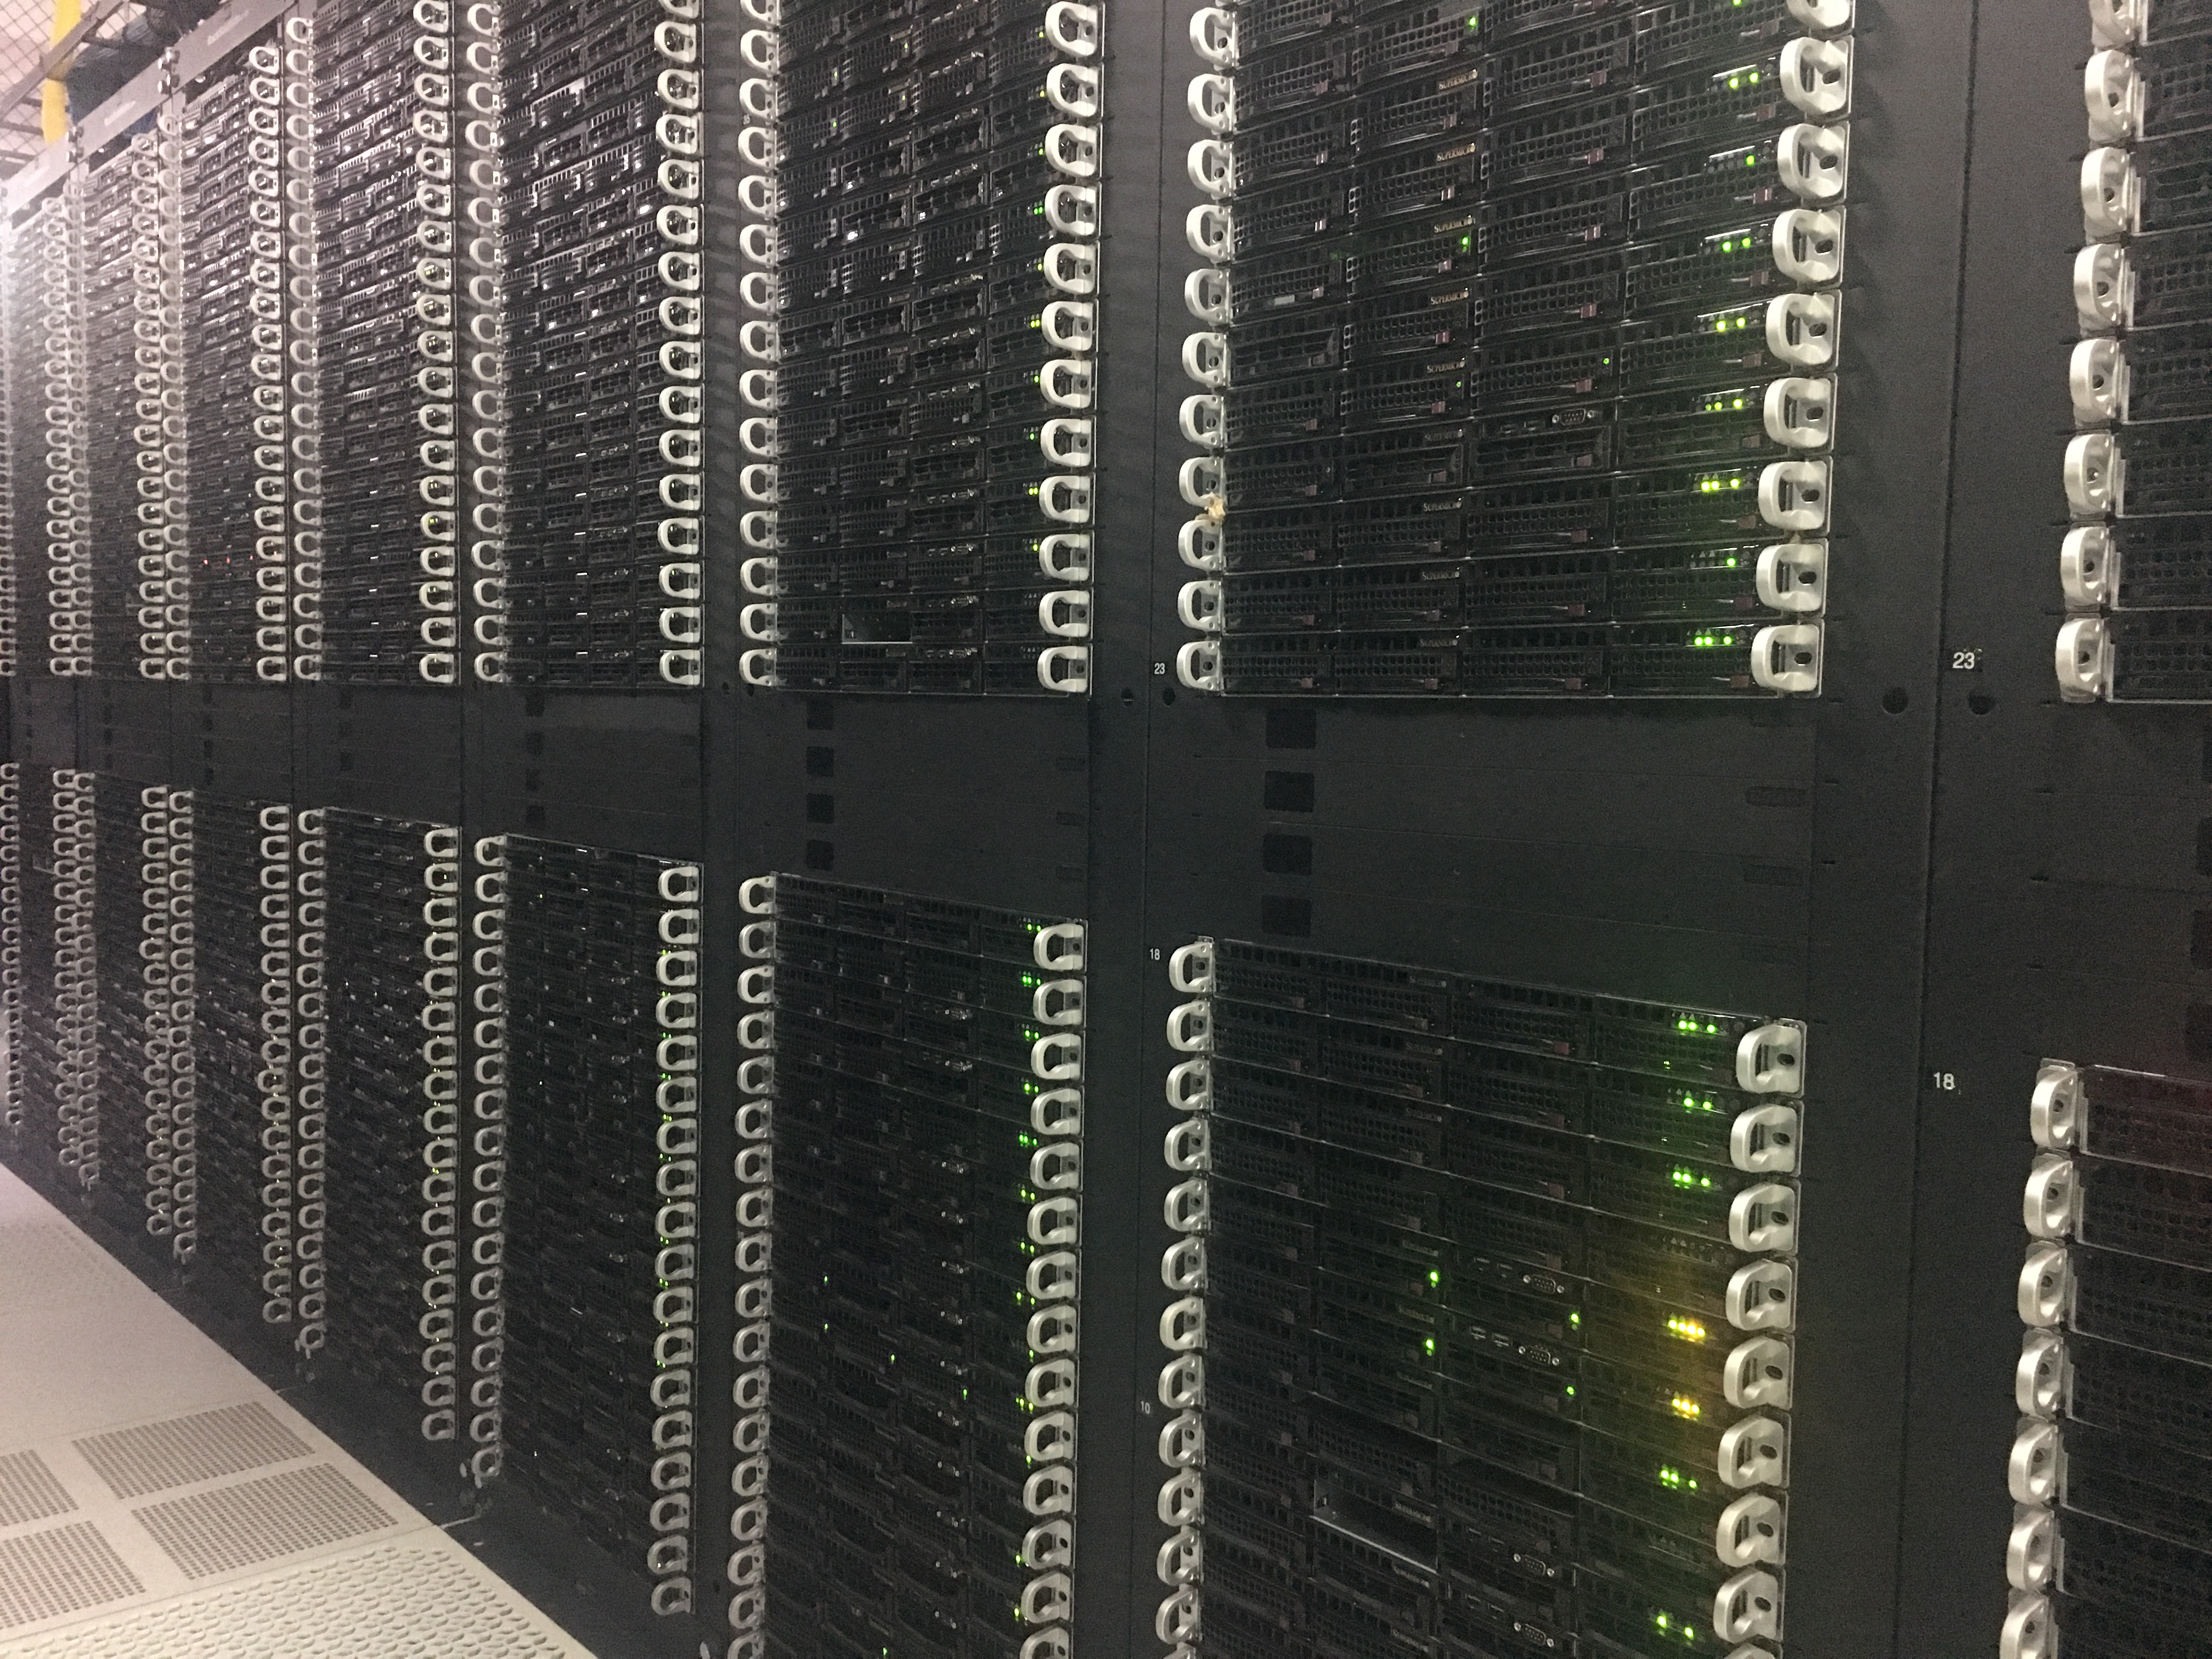 Active Dedicated Server Racks in a Hivelocity Data Center